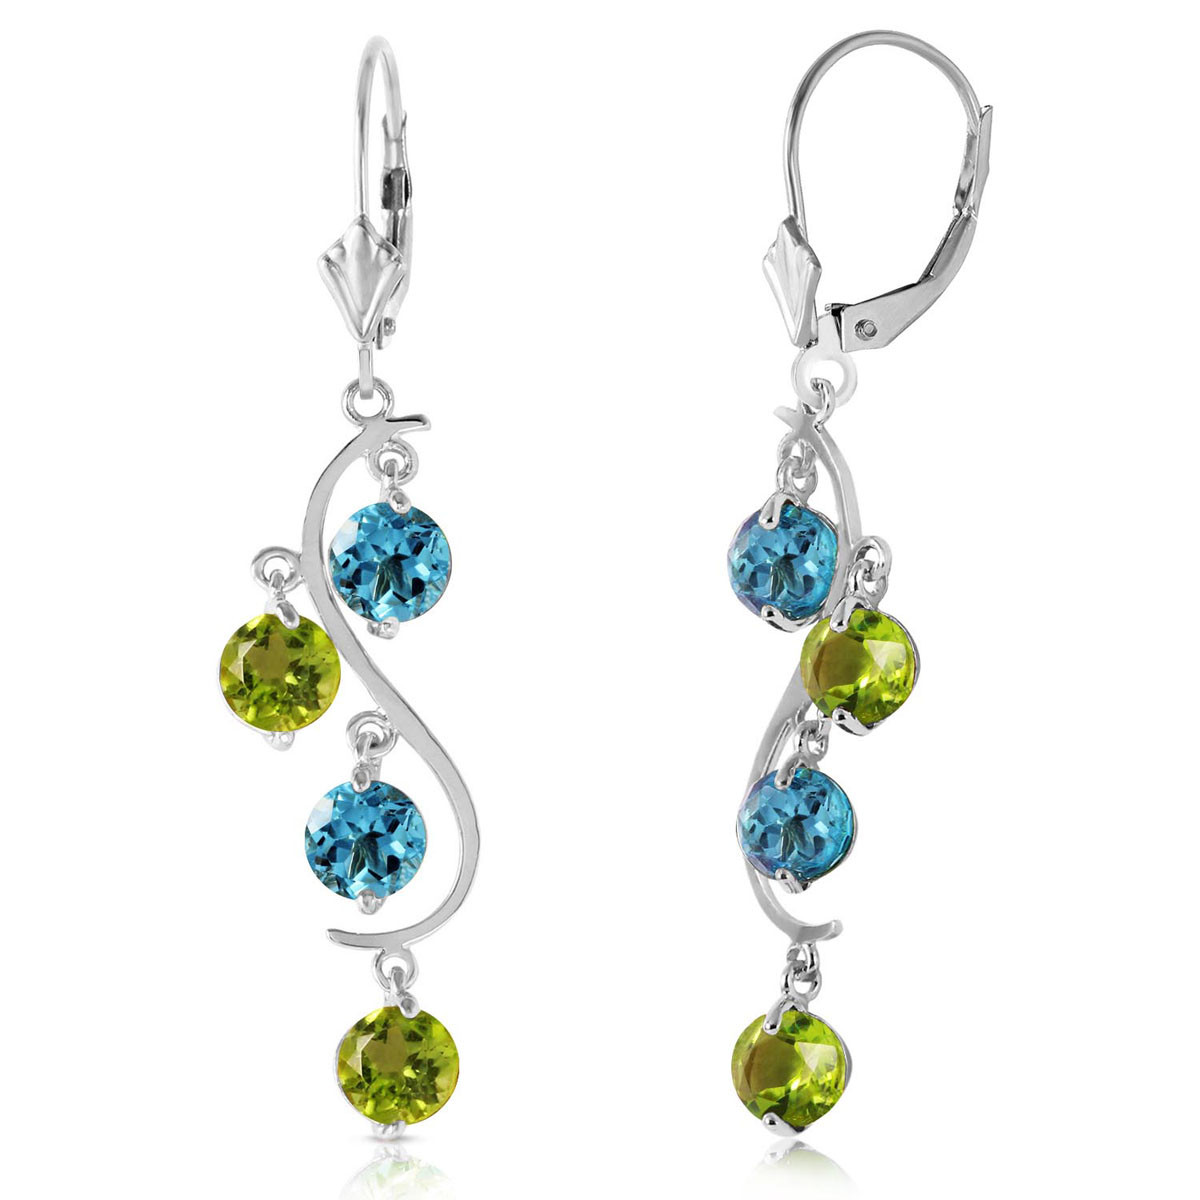 Blue Topaz & Peridot Dream Catcher Drop Earrings in 9ct White Gold